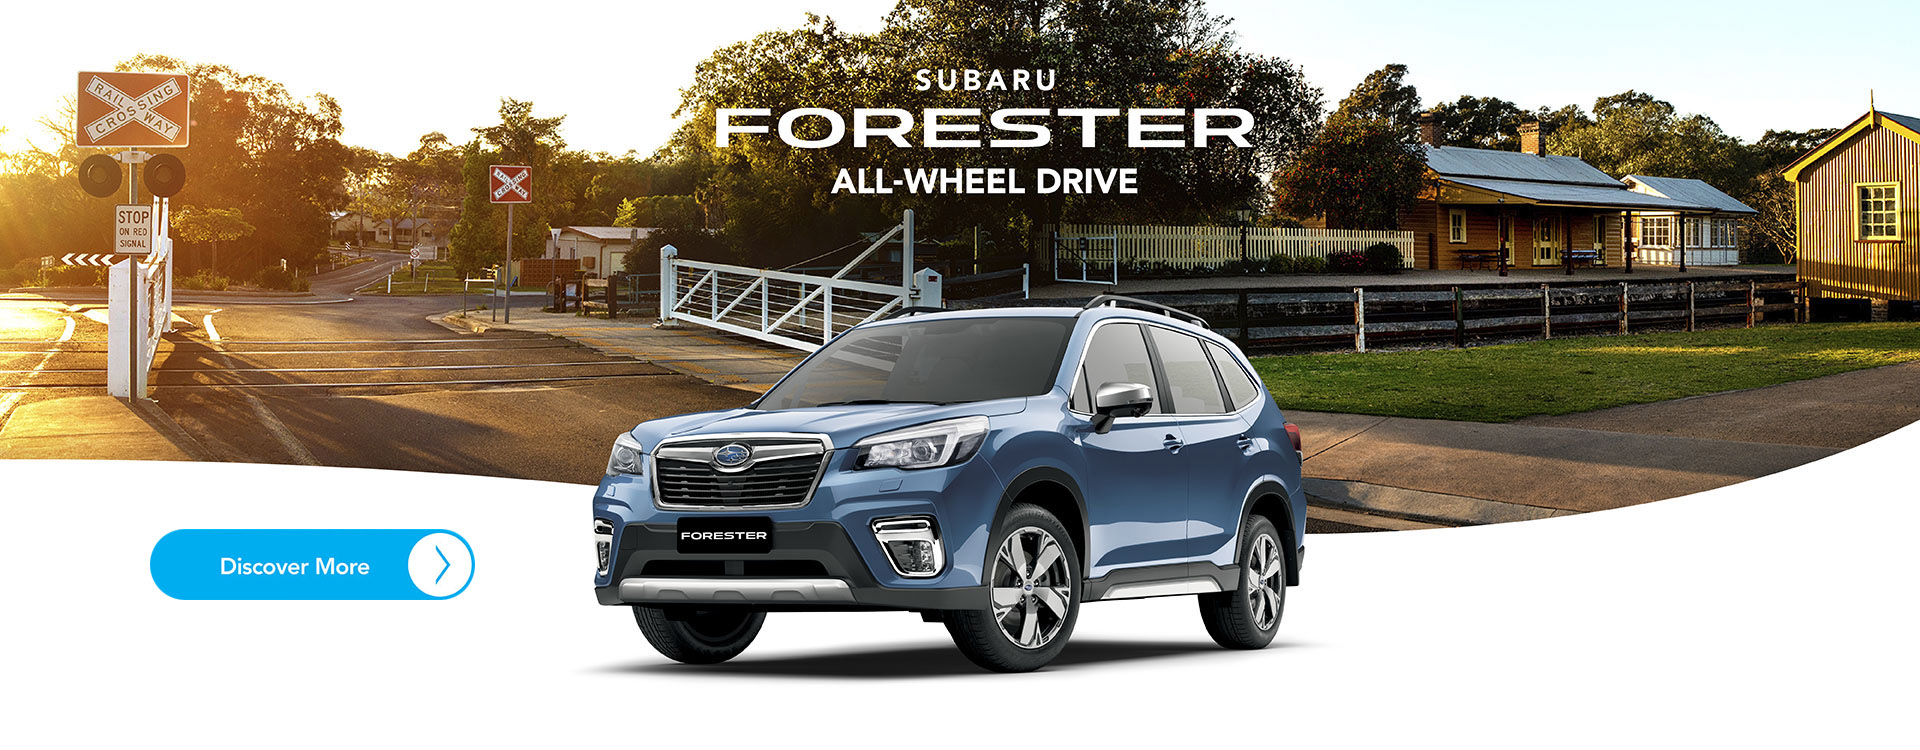 New Subaru Forester, including Hybrid e-Boxer, now available at Cricks Tweed Subaru, Tweed Heads. Test Drive Today!